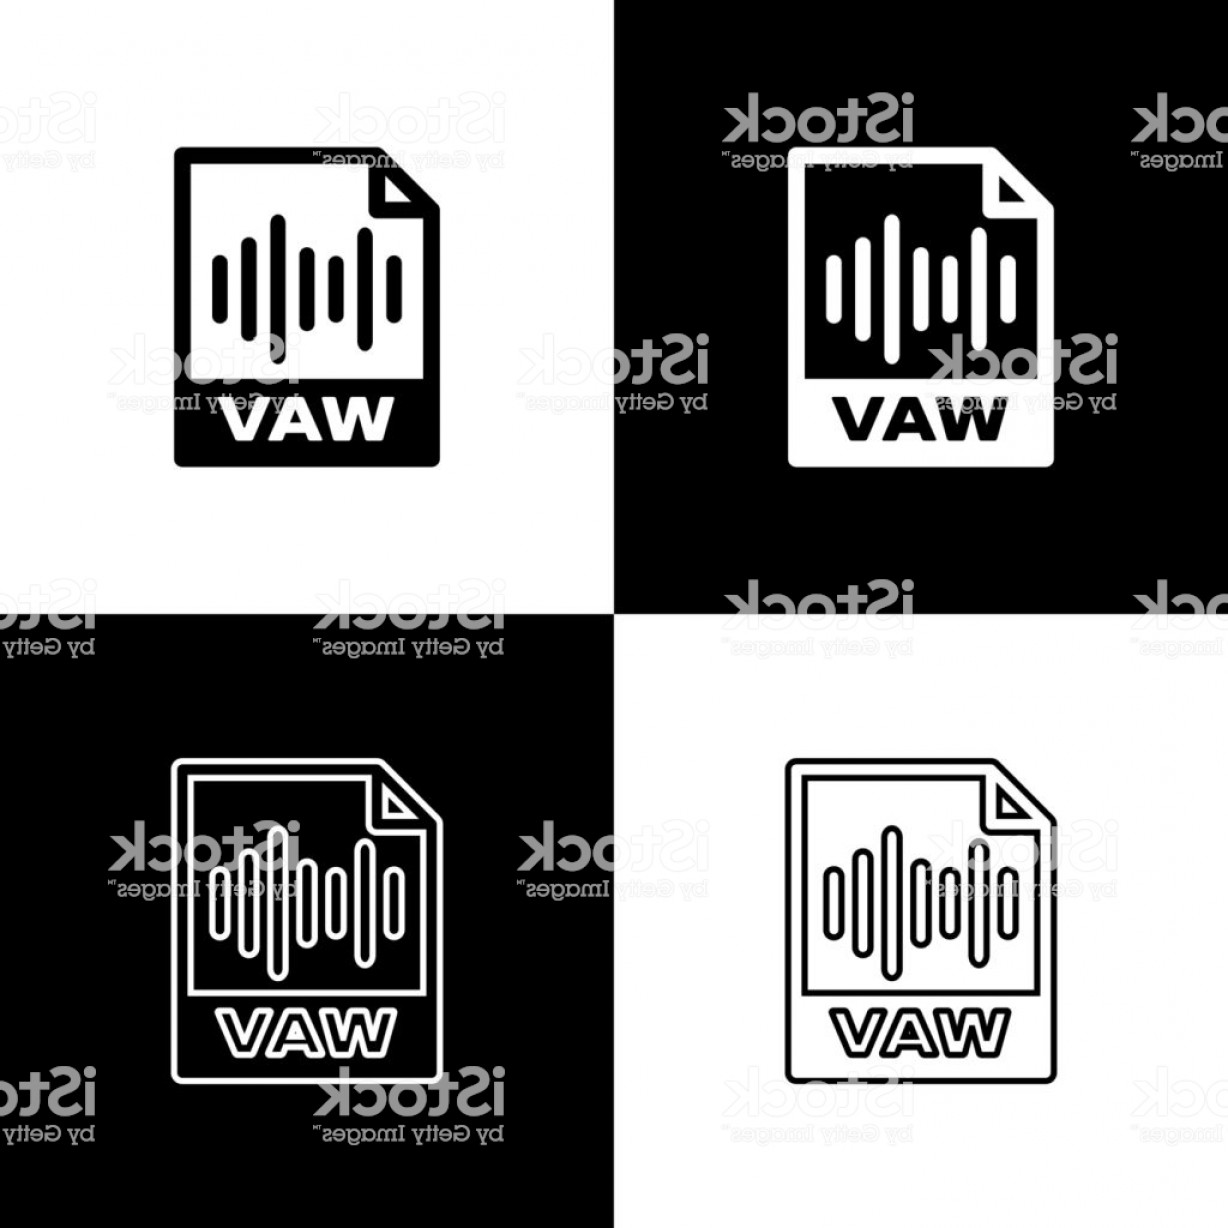 File Formats Vector Artwork: Set Wav File Document Icon Download Wav Button Icons Isolated On Black And White Gm